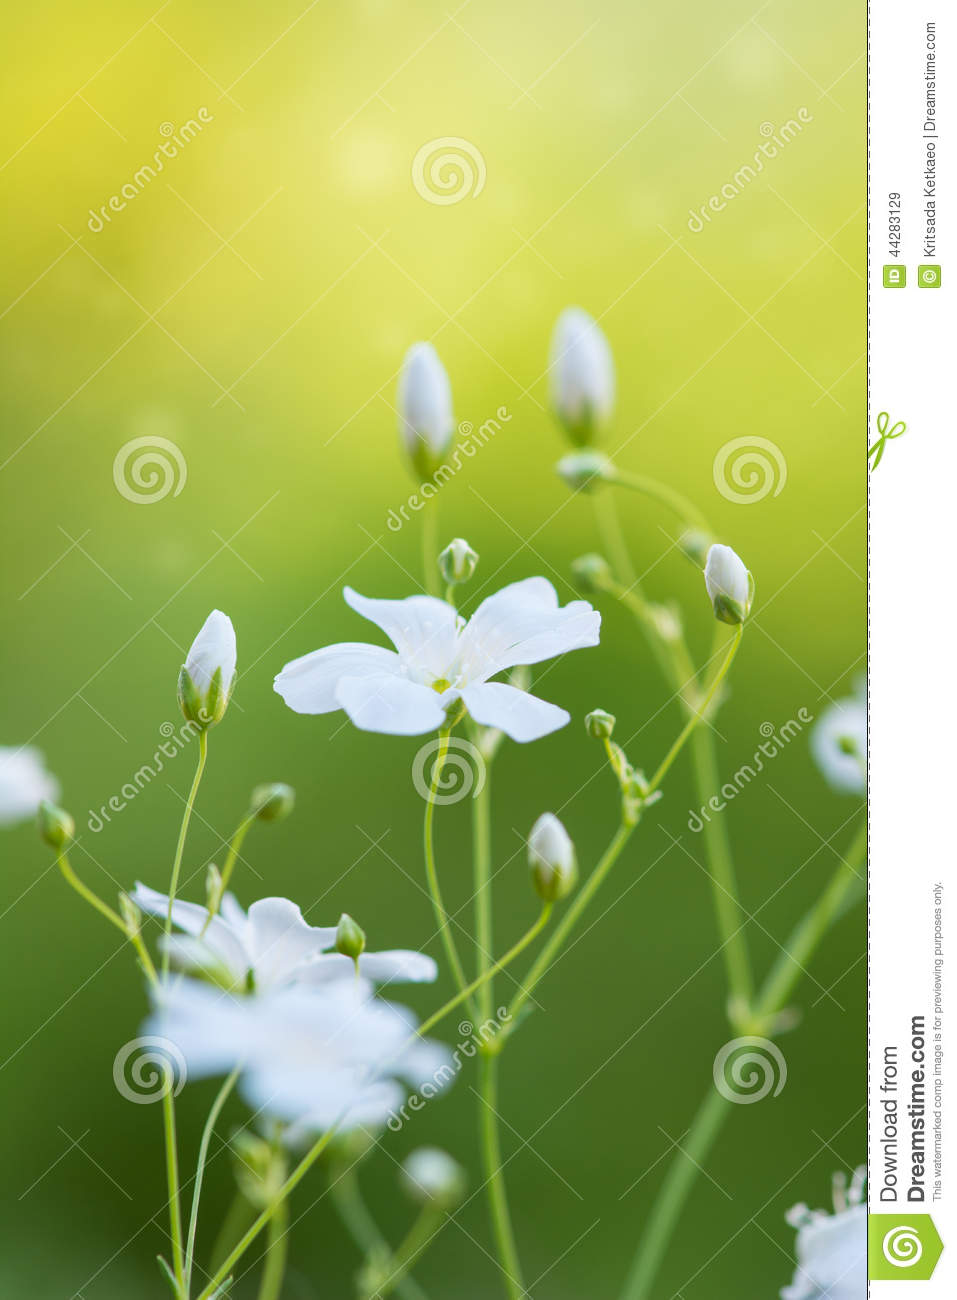 abstract beautiful white flowers - photo #7